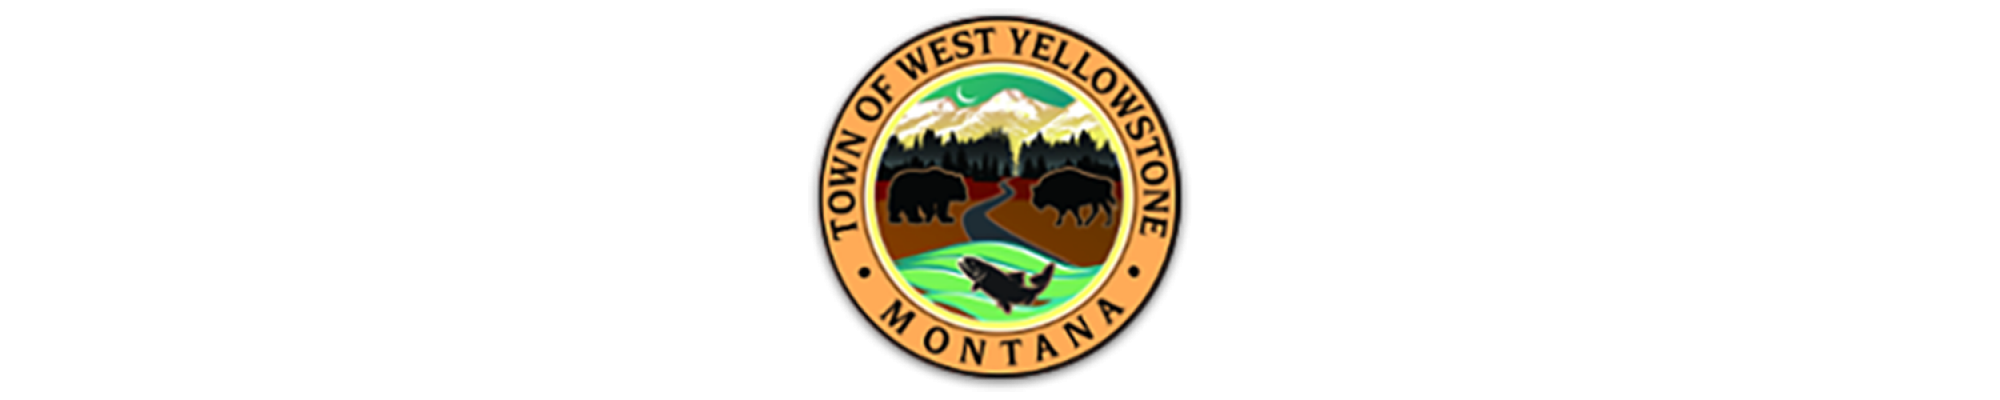 West Yellowstone logo c